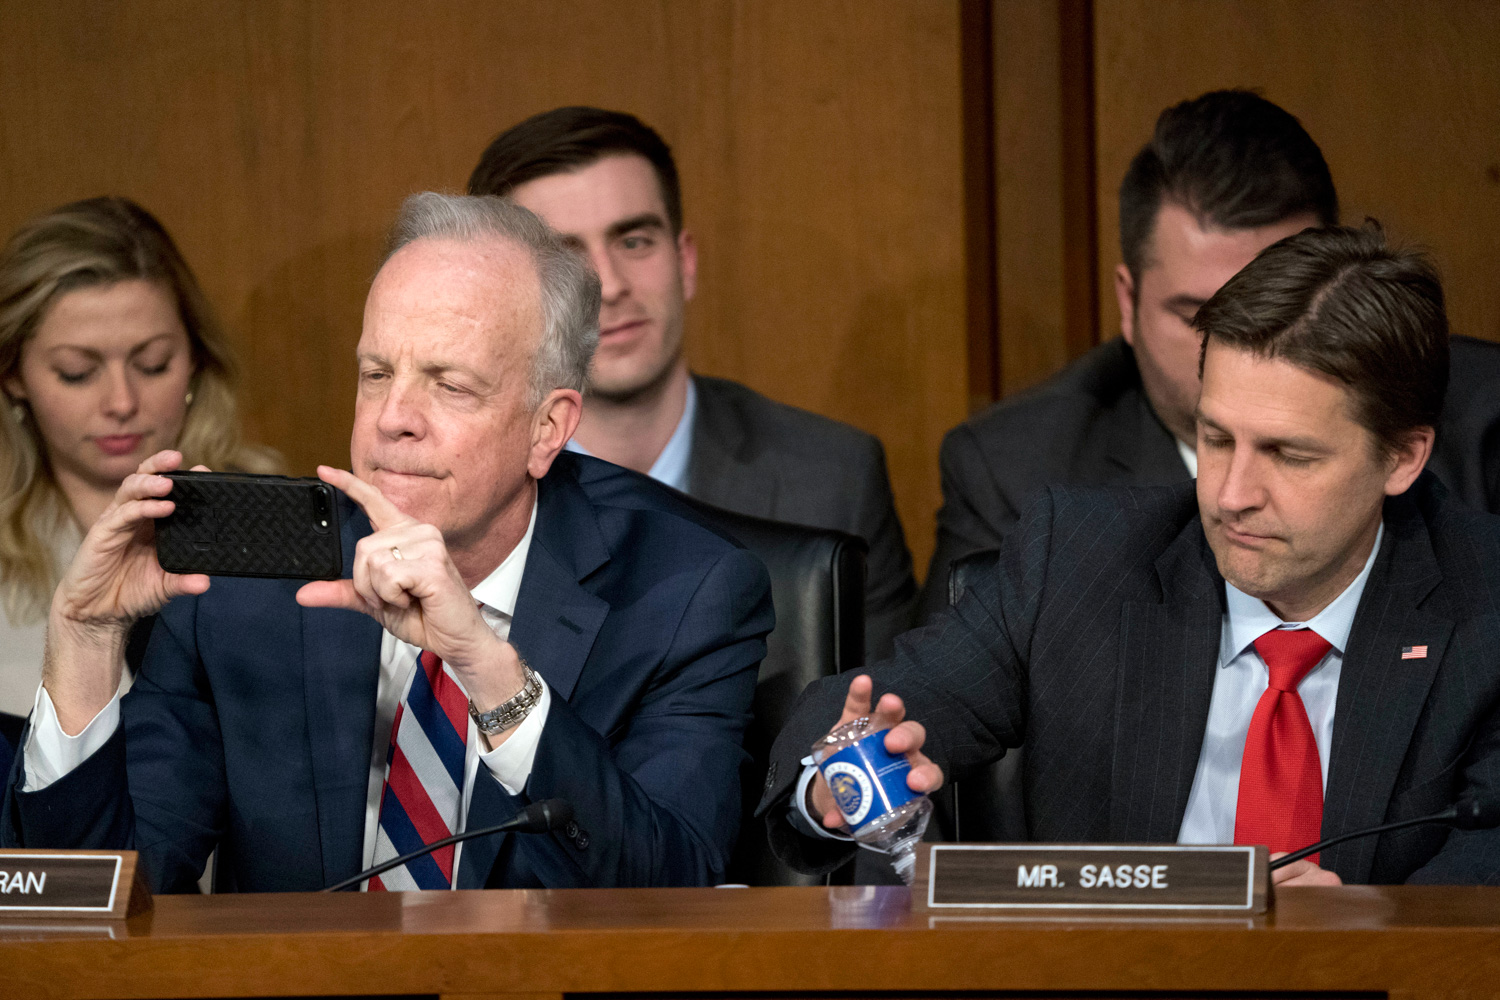 <div class='meta'><div class='origin-logo' data-origin='none'></div><span class='caption-text' data-credit='Andrew Harnik/AP Photo'>Sen. Jerry Moran, R-Kan., left, accompanied by Sen. Ben Sasse, R-Neb., right, takes a photo as Facebook CEO Mark Zuckerberg testifies.</span></div>